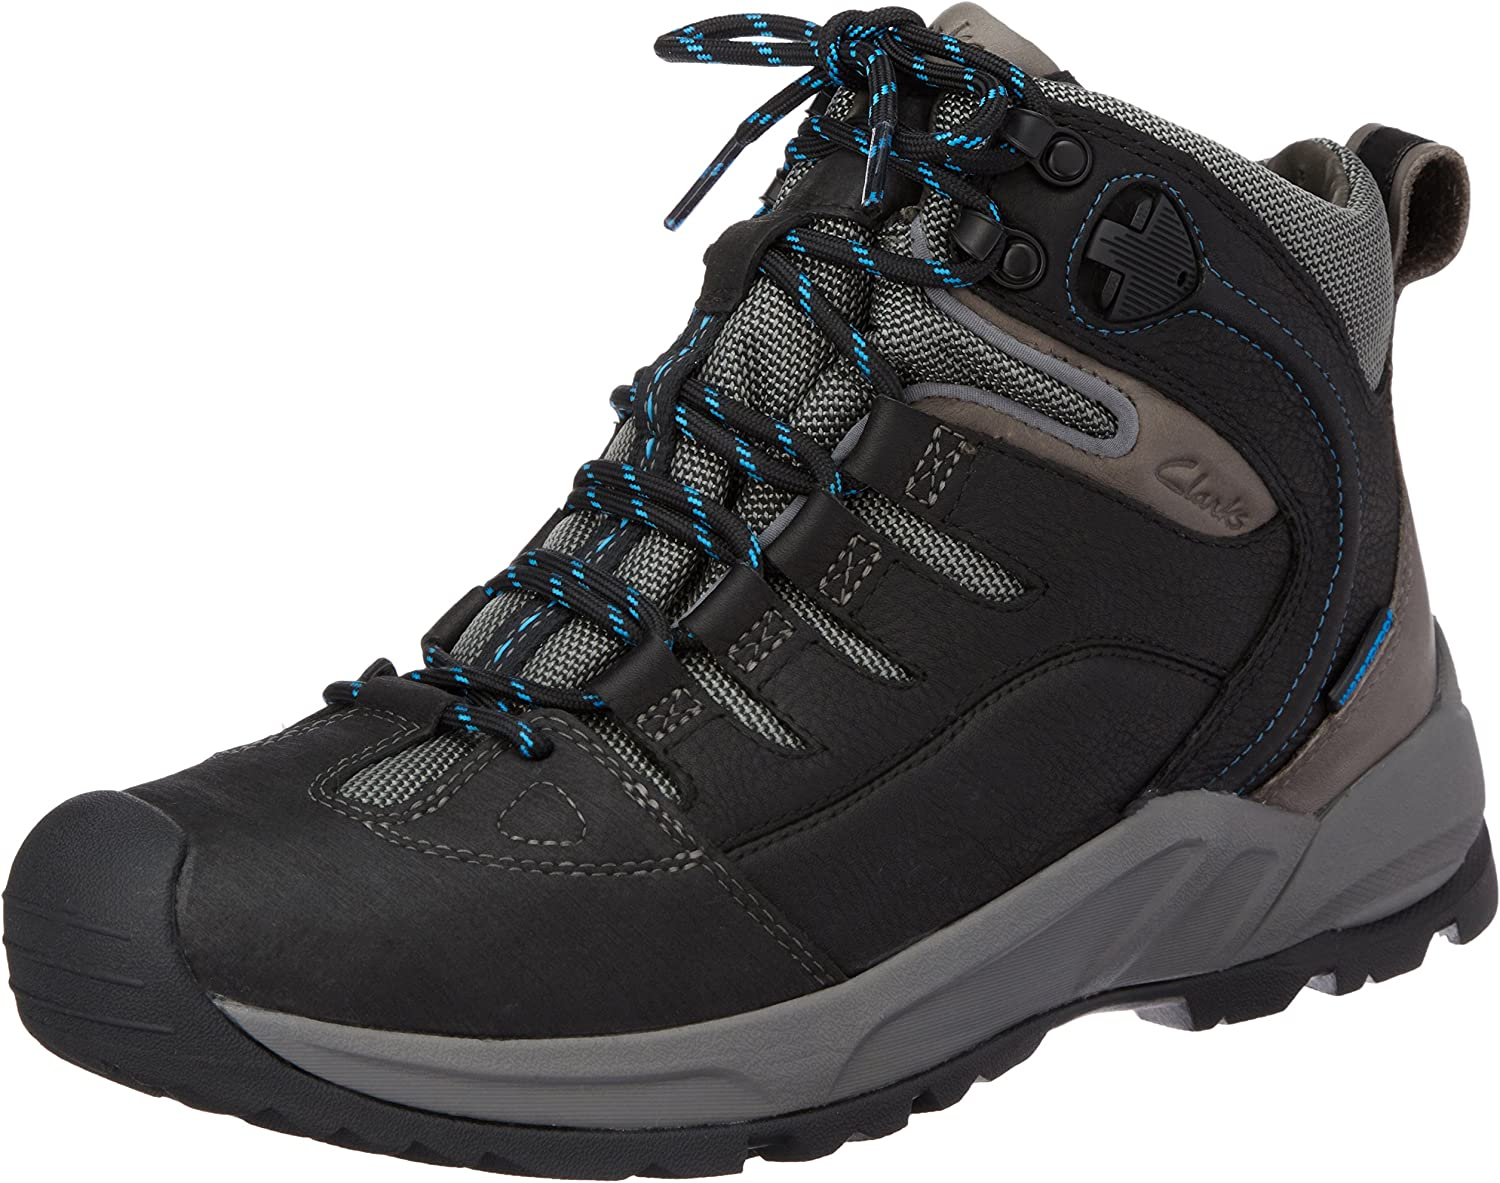 Clarks Outvent Mid Weatherproof Waterproof Active-Air Boot Men UK-8.5 EU-42.5 G